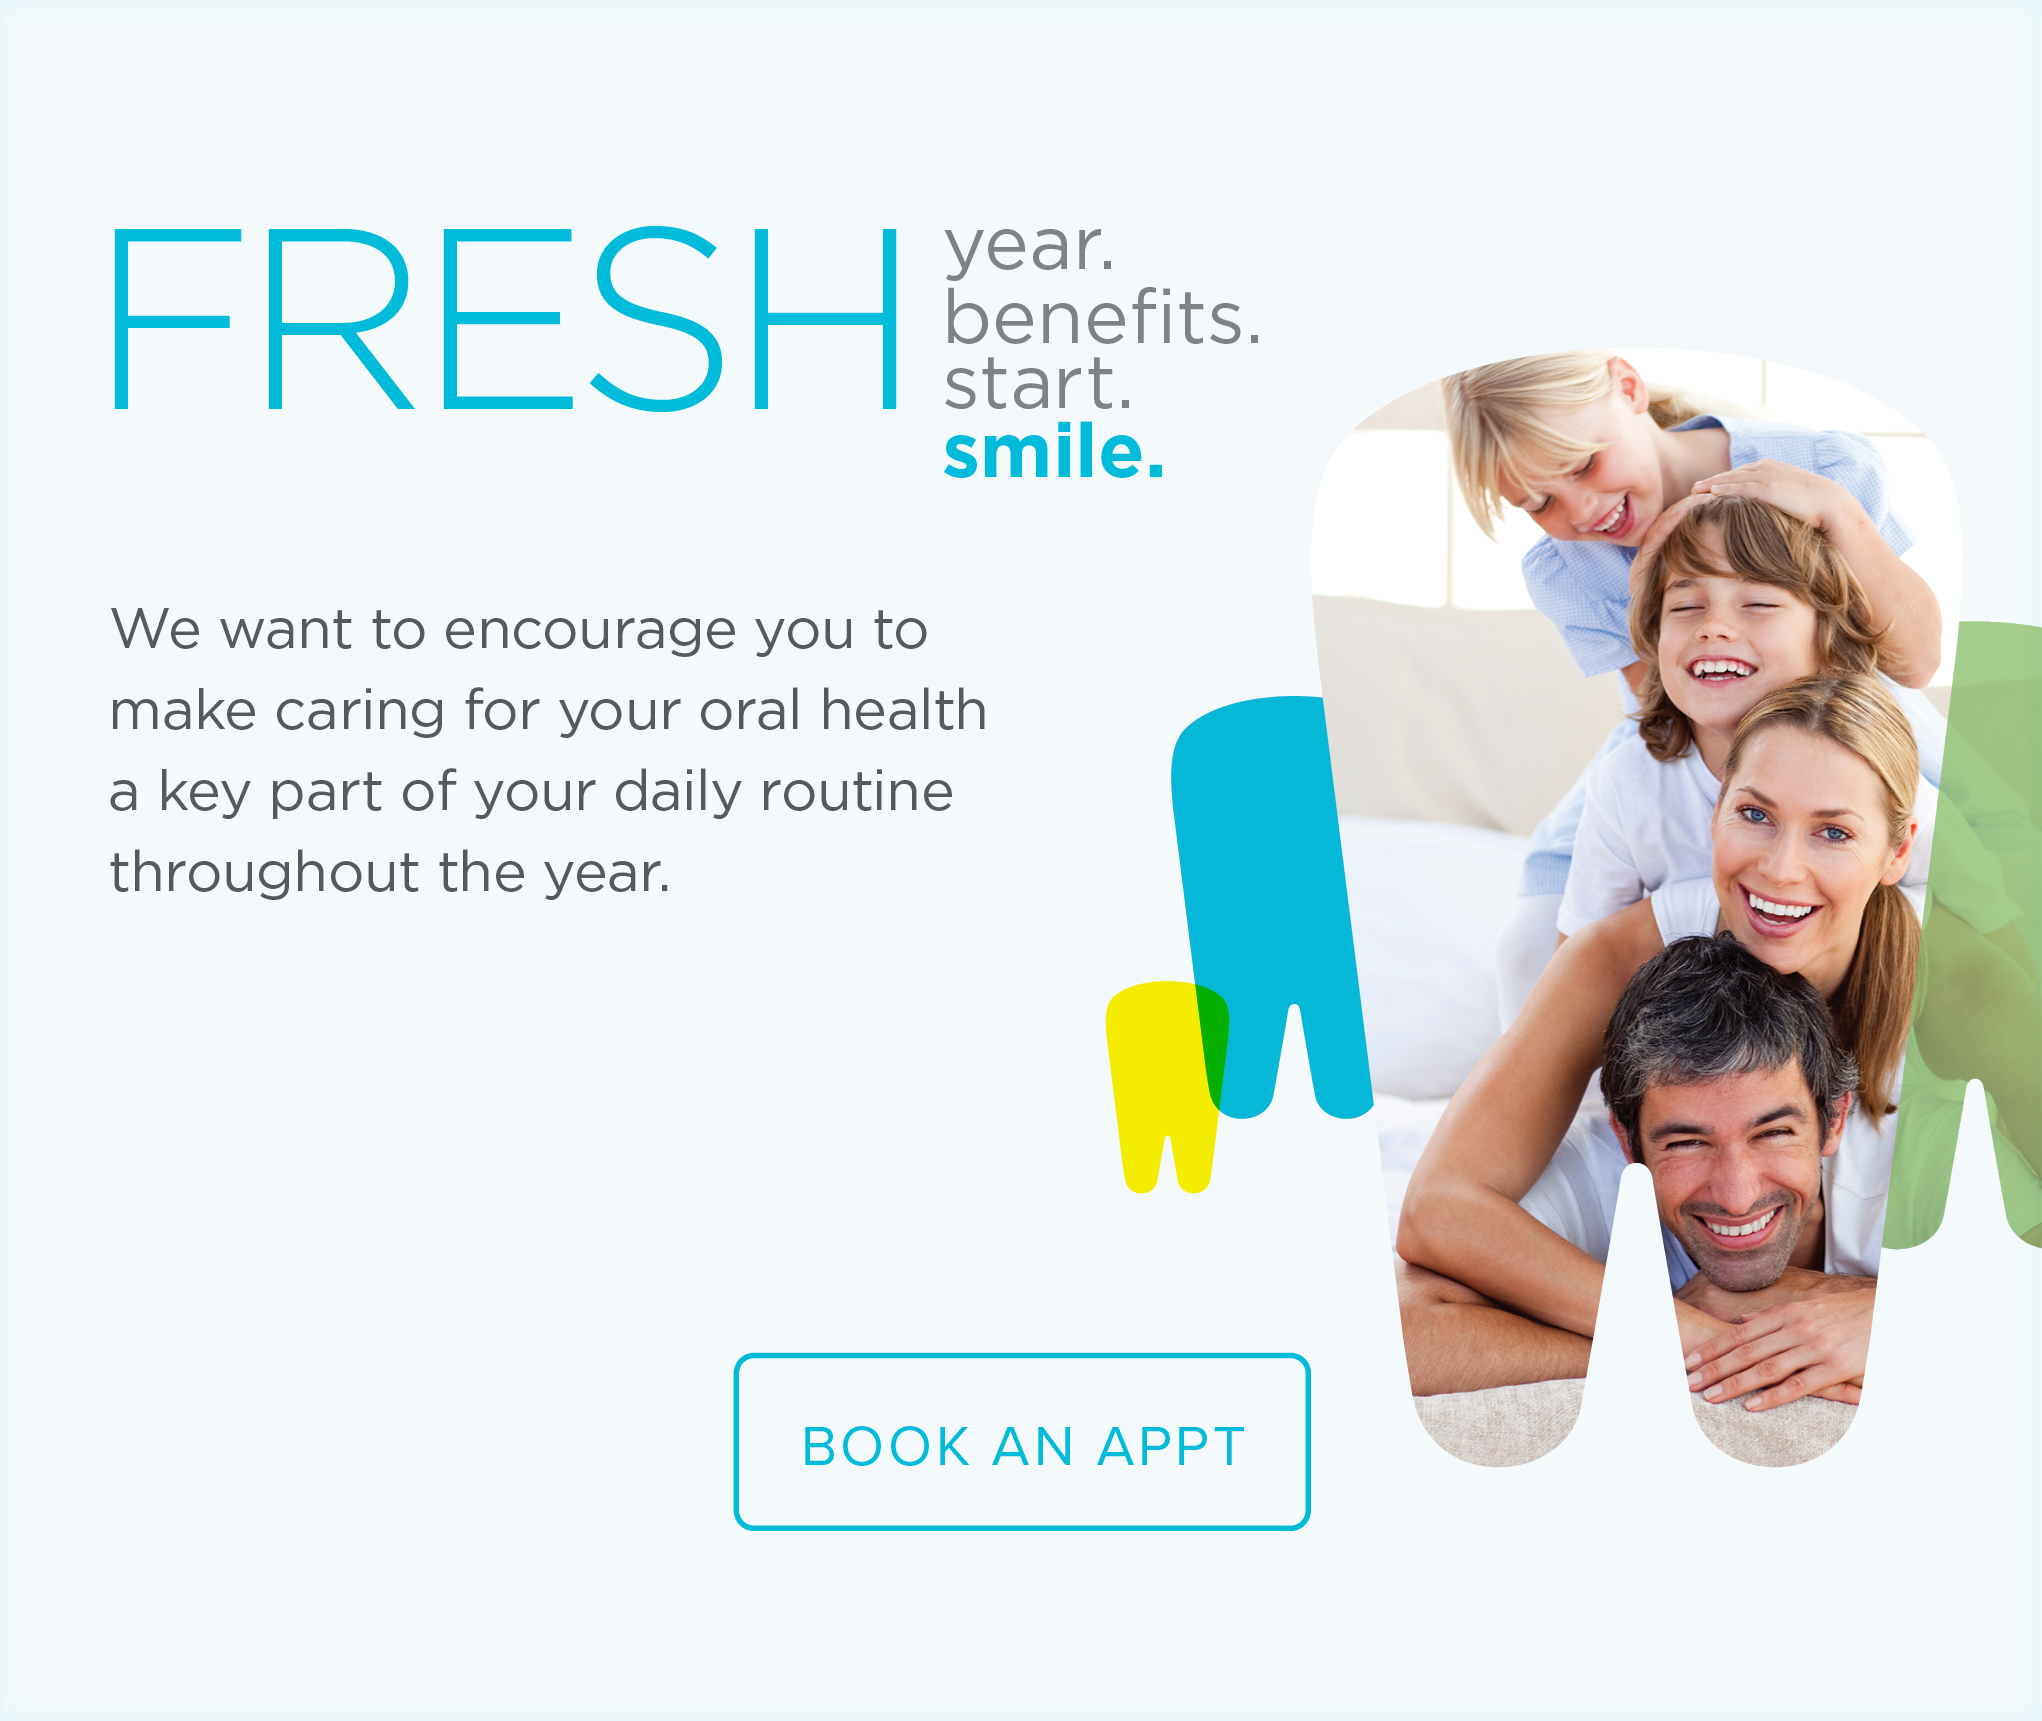 Carmel Valley Dentist Office and Orthodontics - Make the Most of Your Benefits